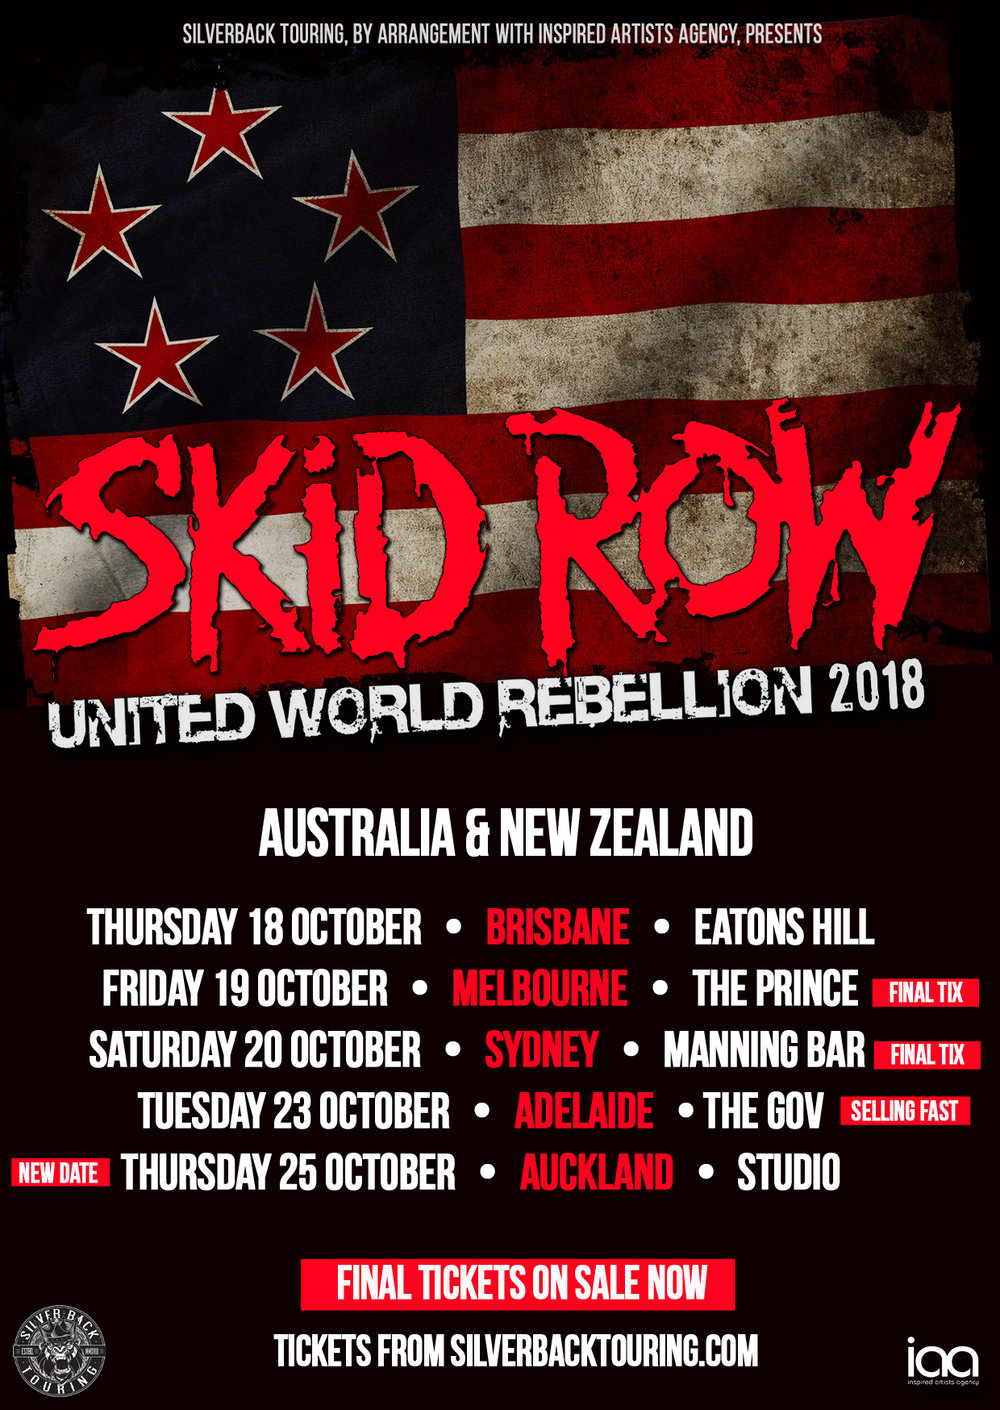 Skid Row (USA) - AustraLIa & New Zealand